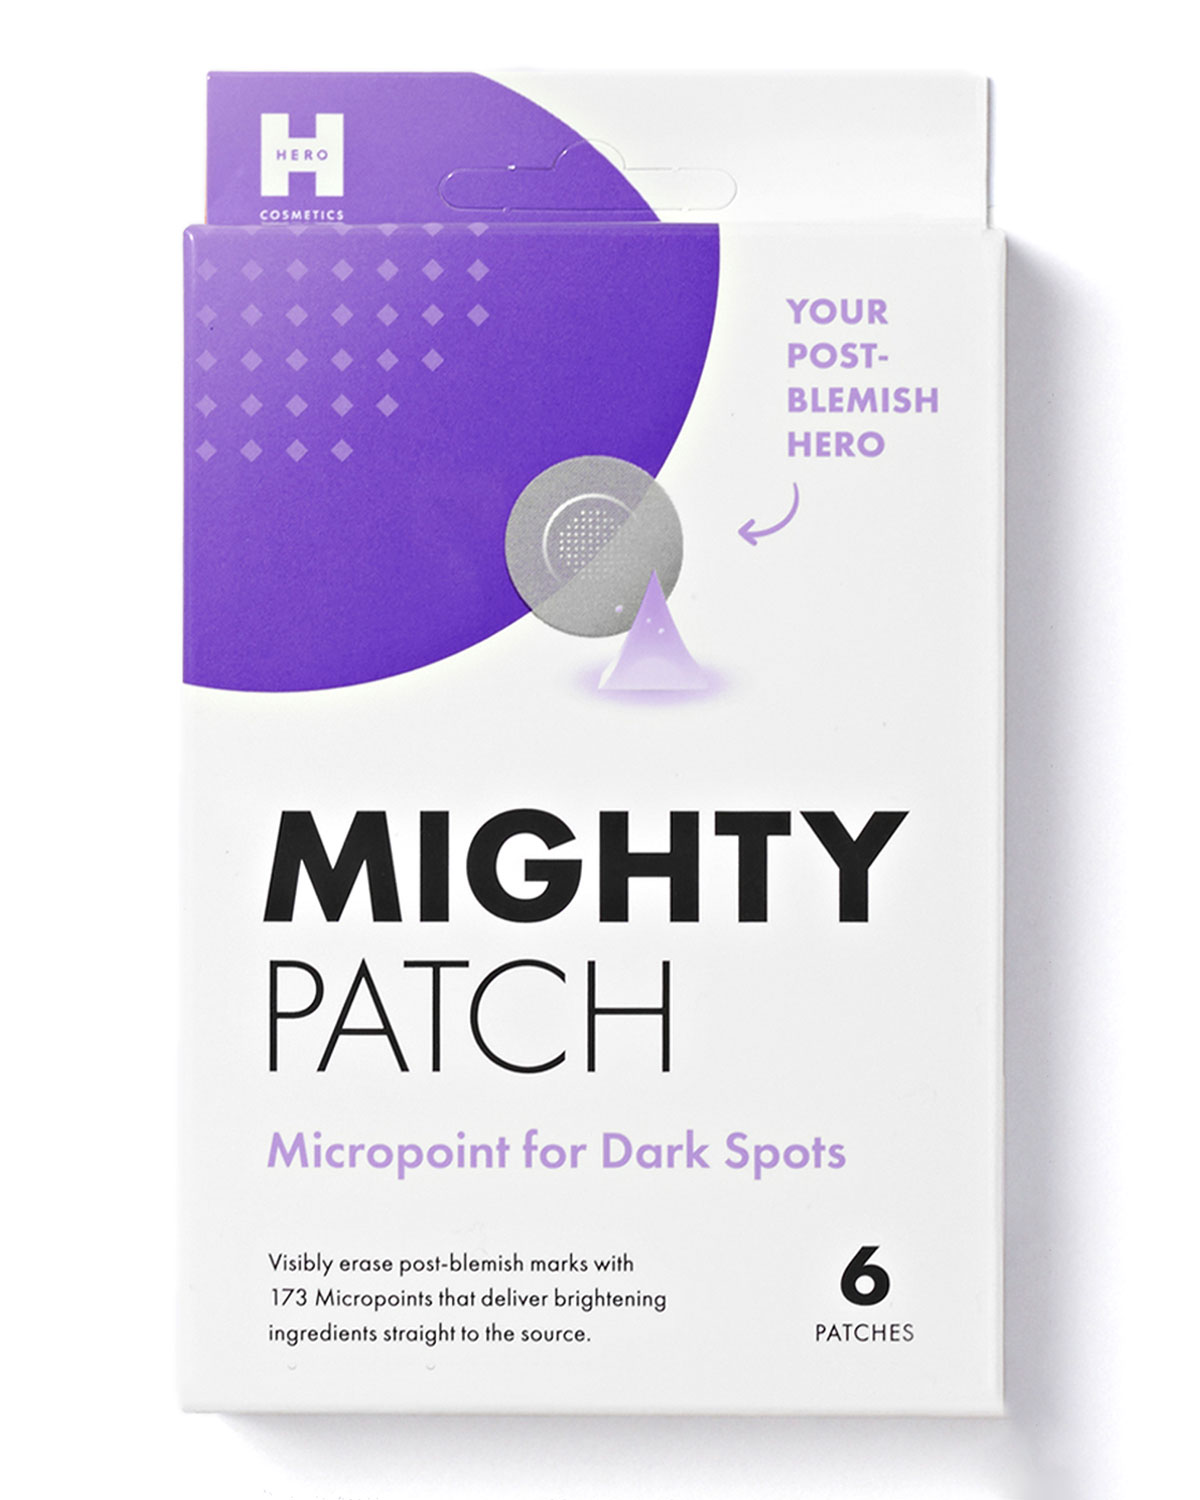 Micropoint for Dark Spots